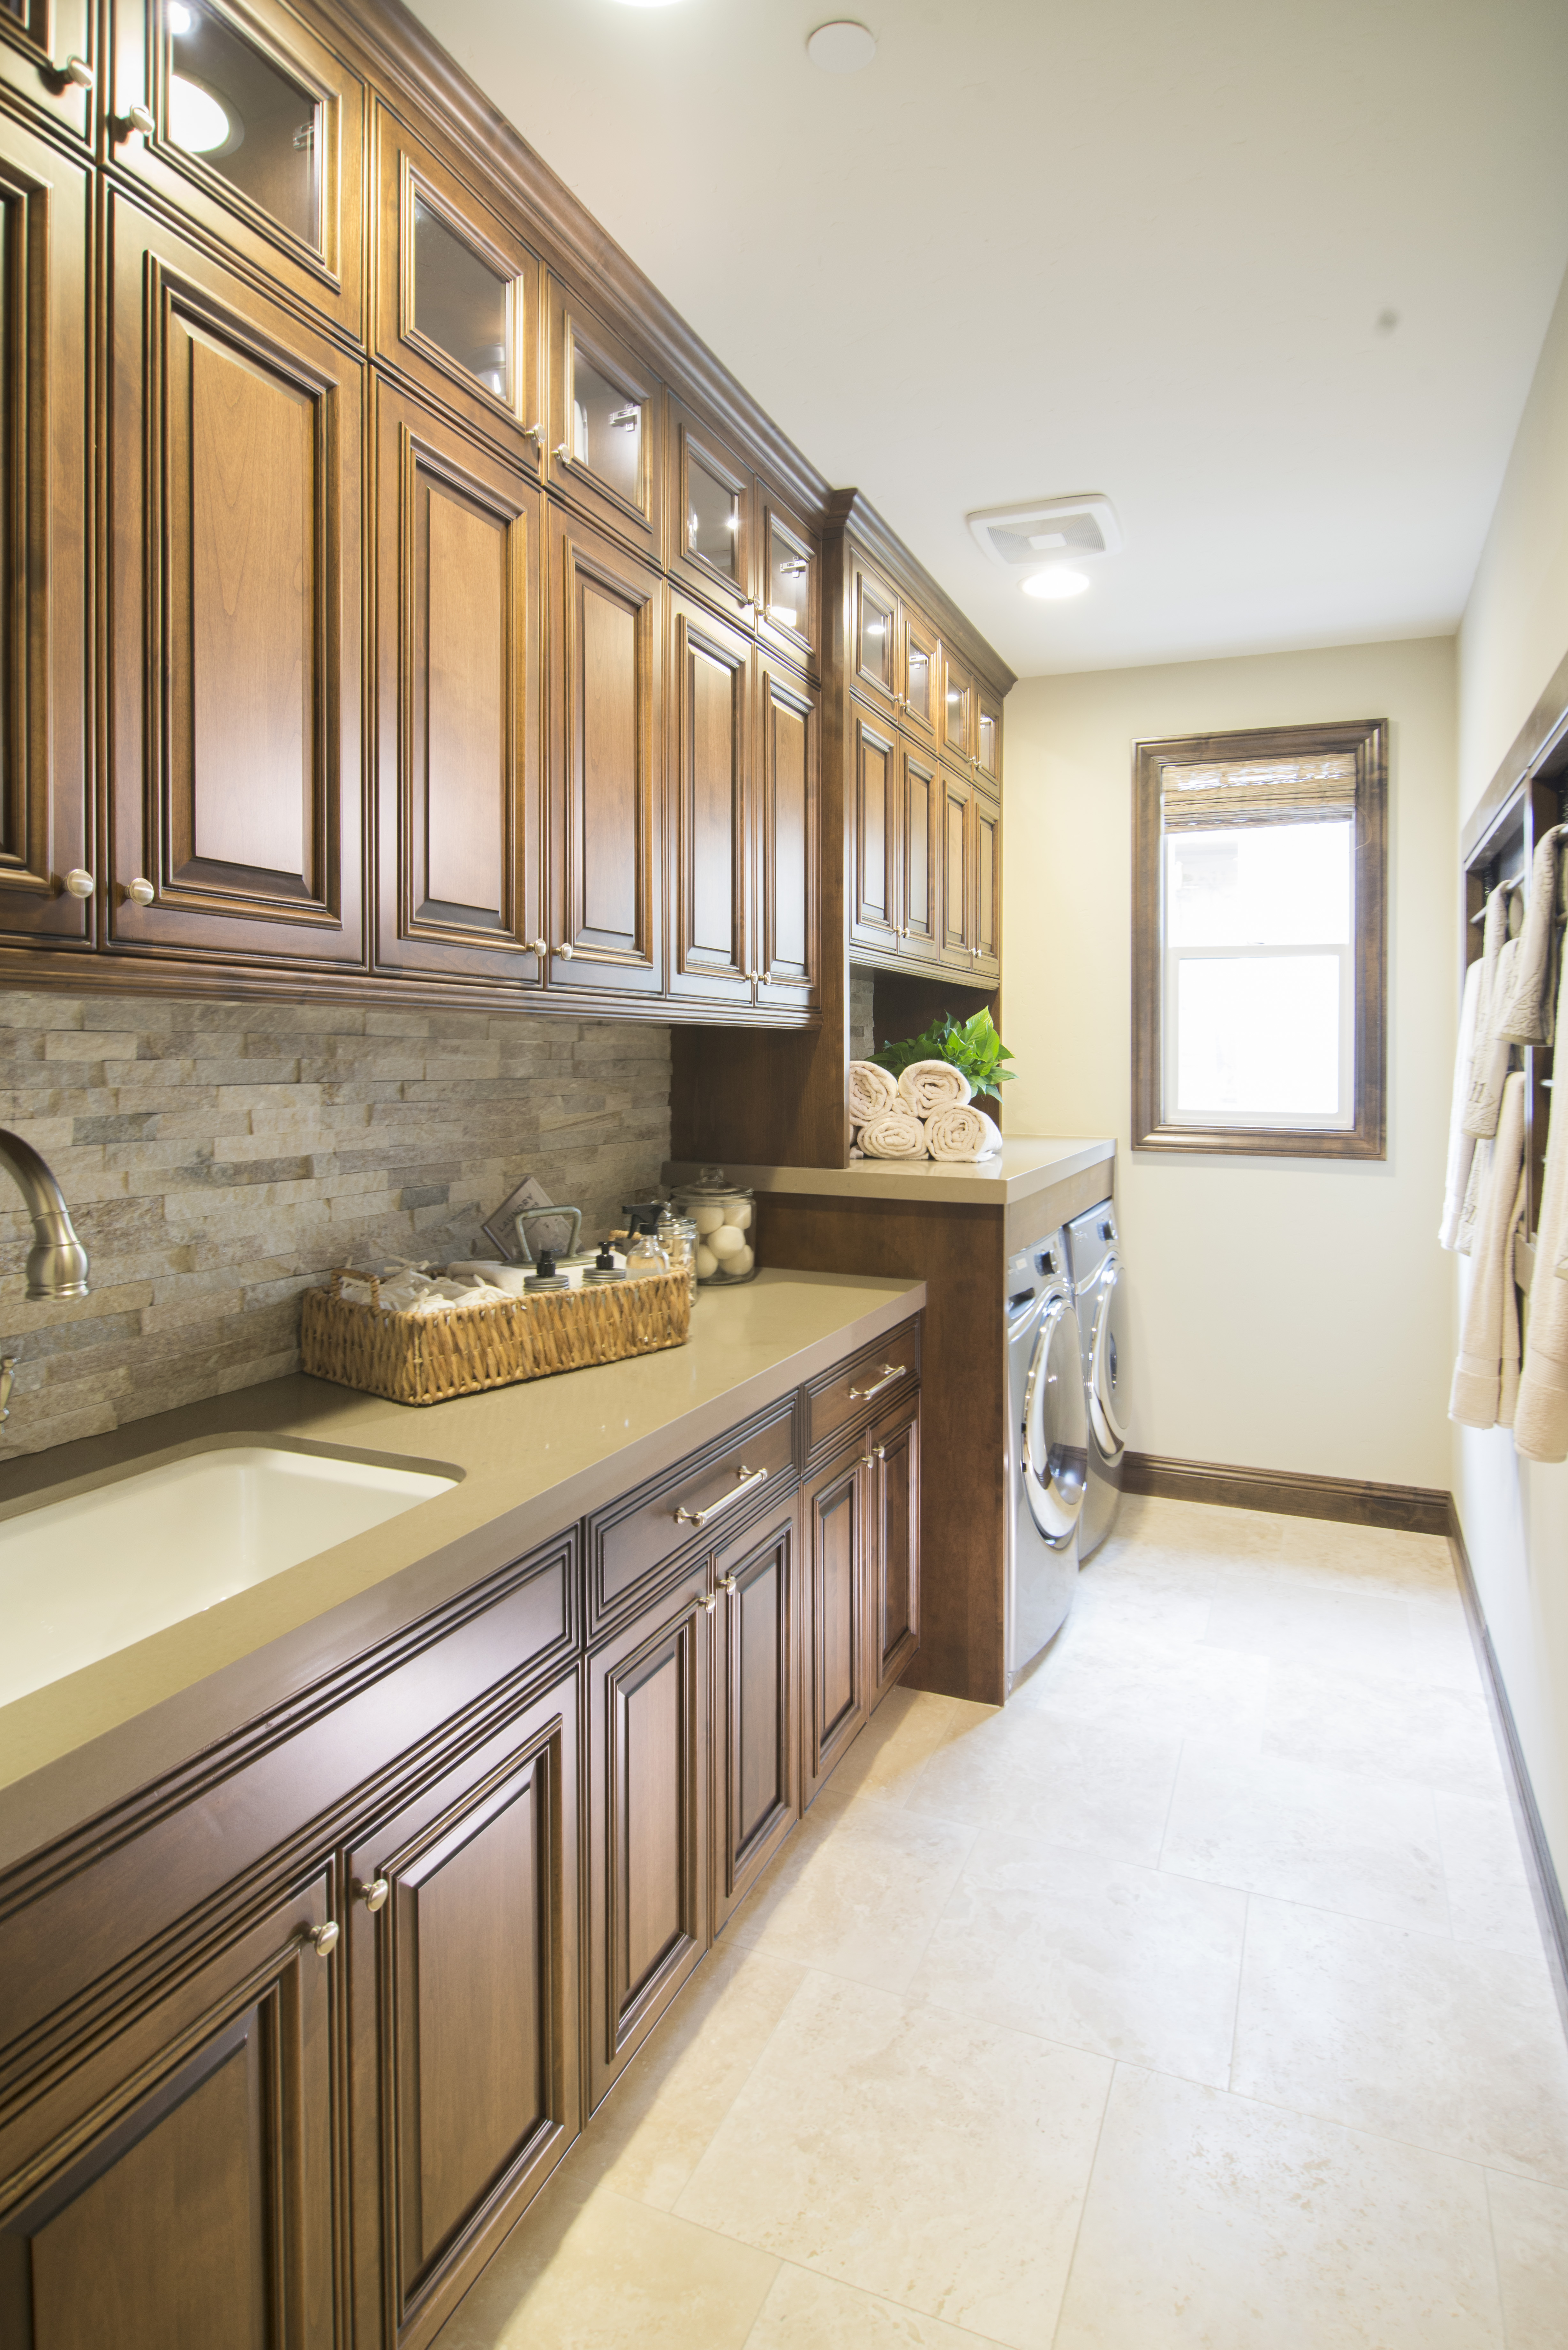 Beautiful Laundry Room Alder Built-Ins with Clear Glass Doors and Puck Lights